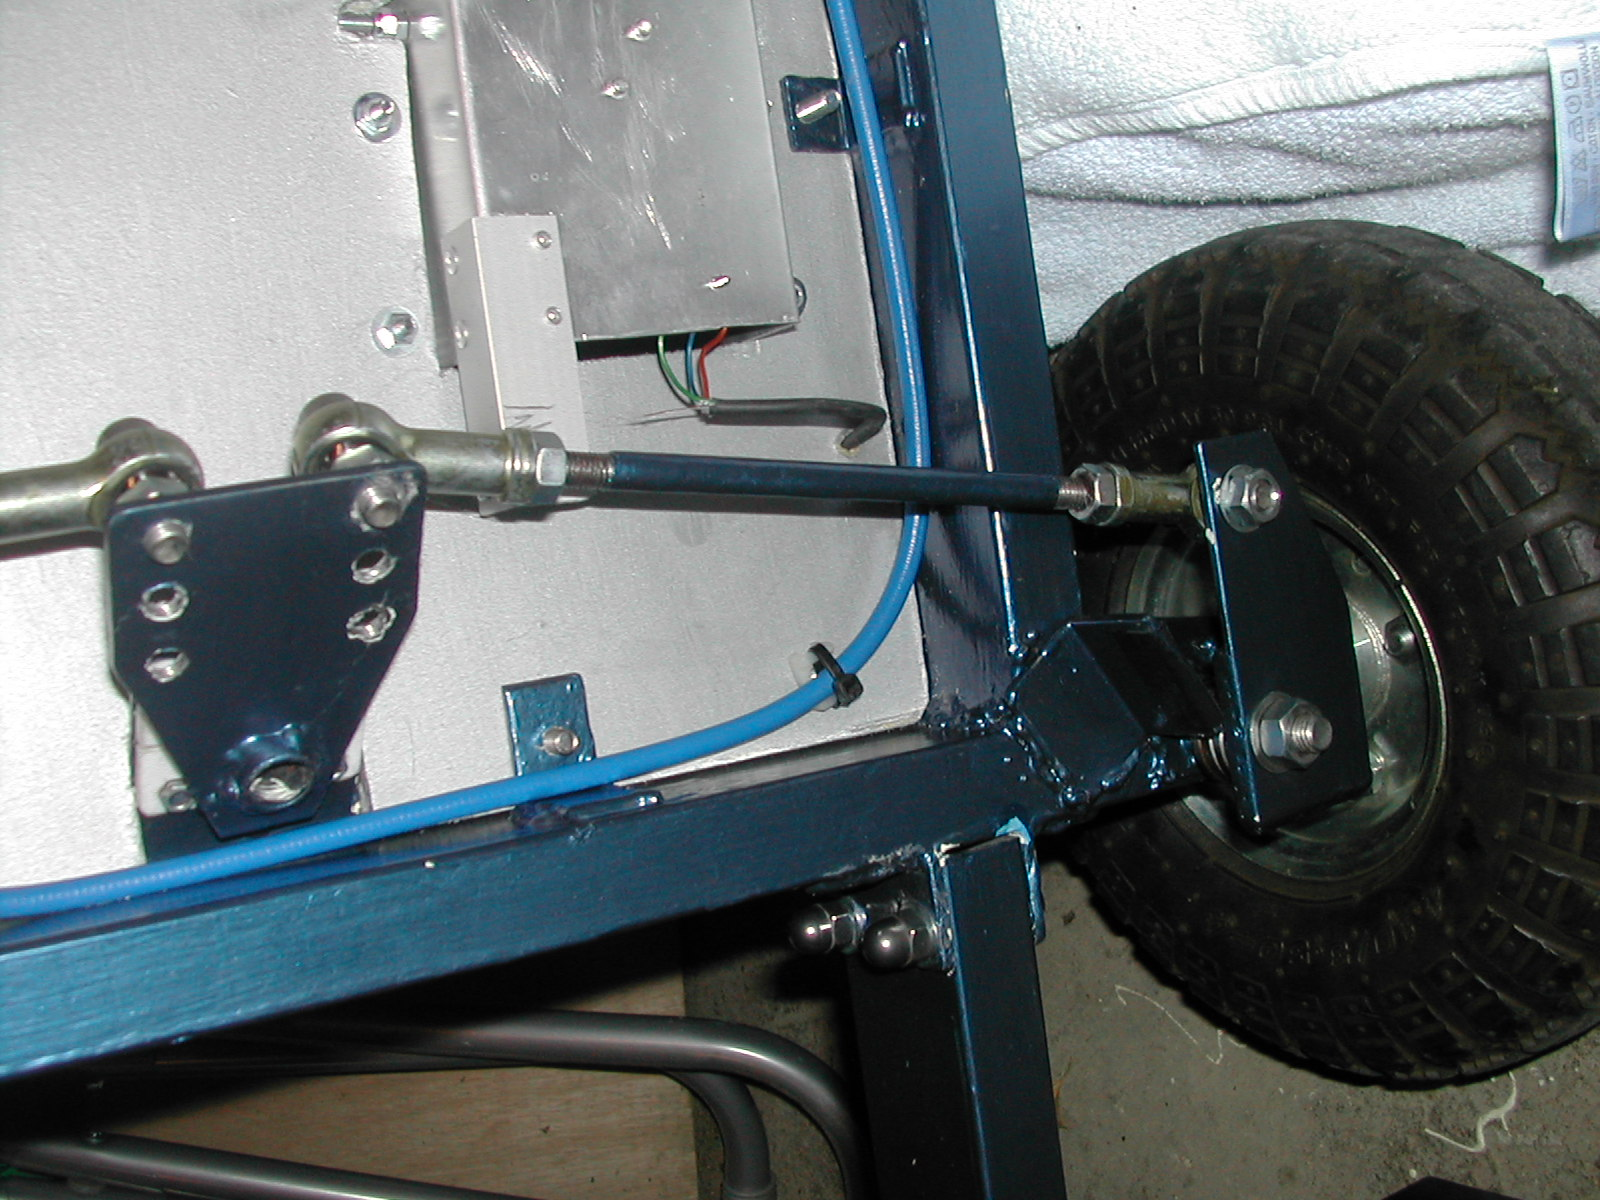 this view the wiring layout for the lighting and motor control ...